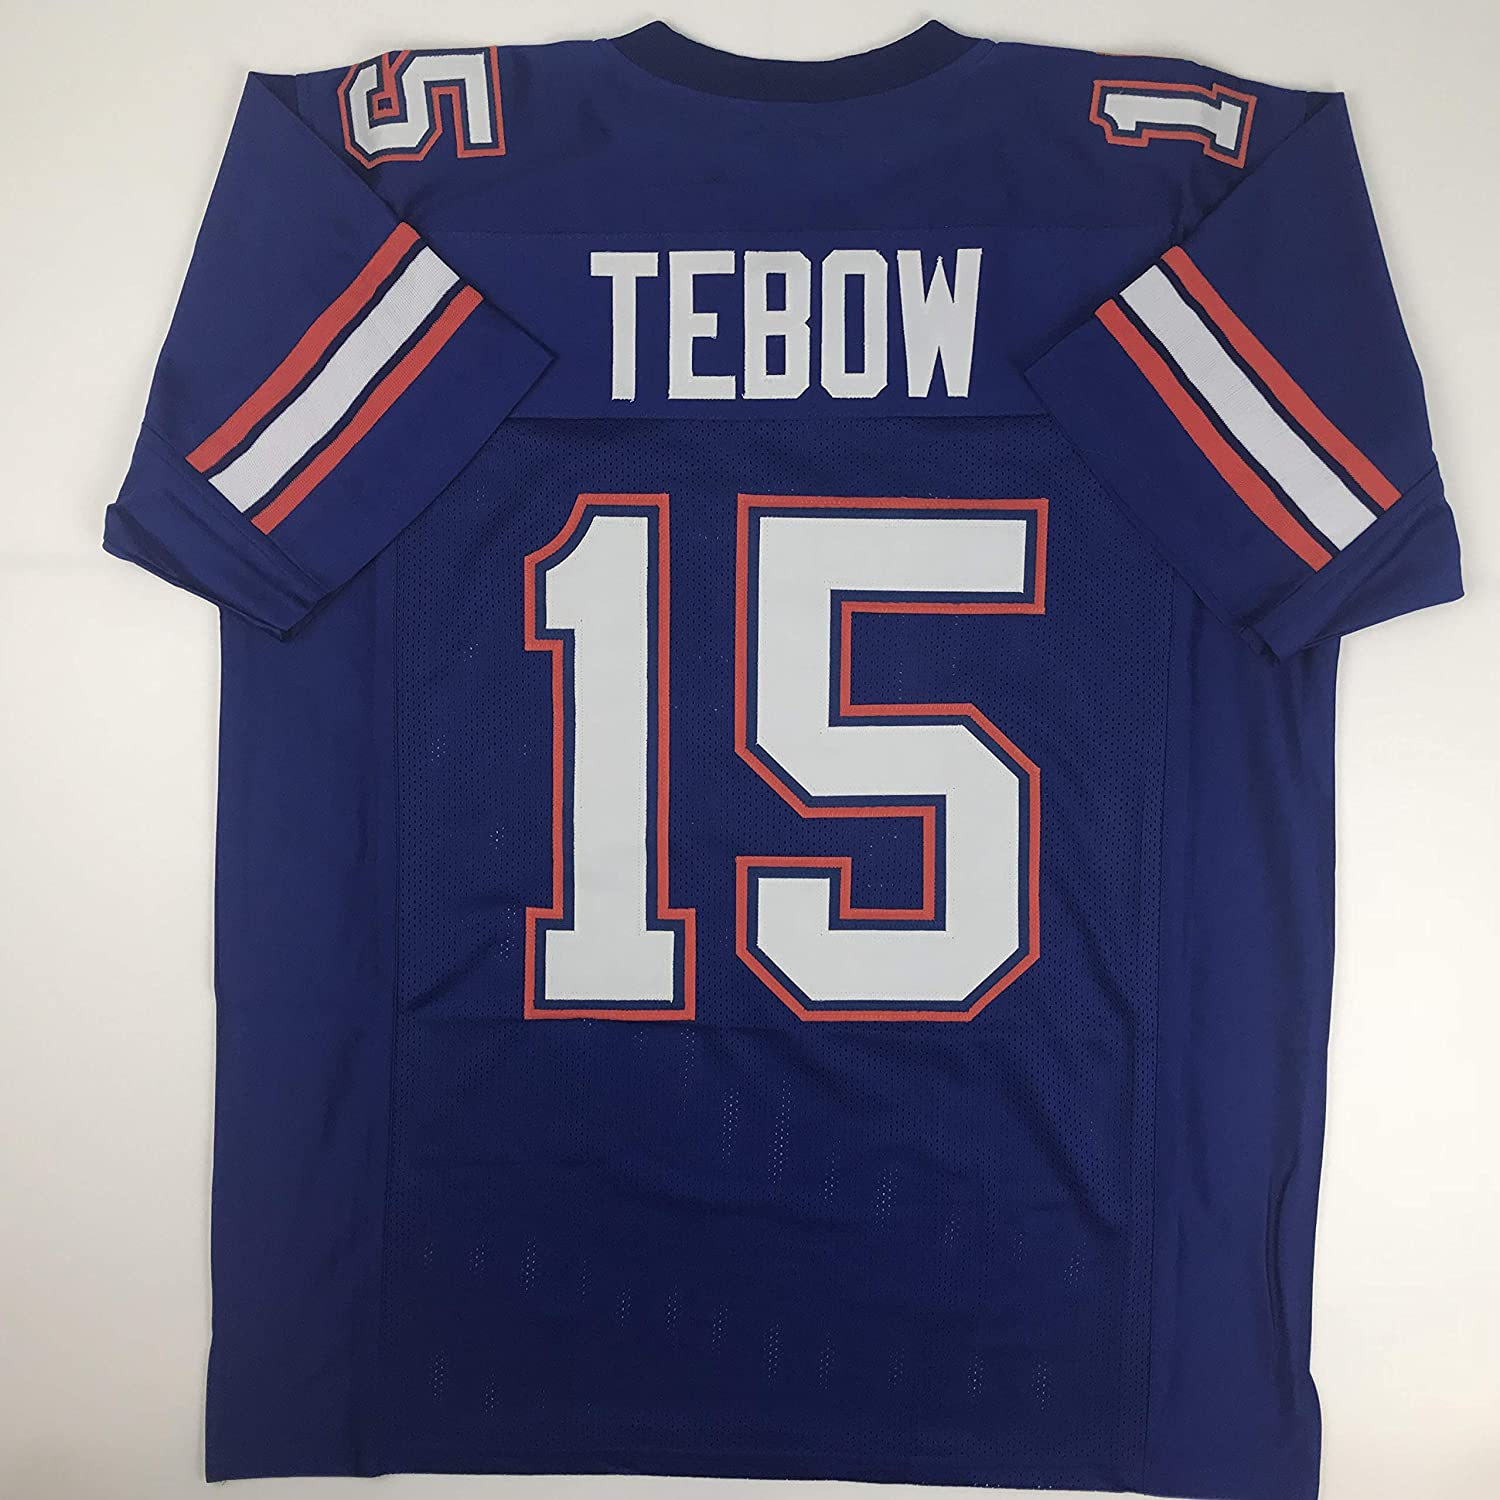 info for ea7a4 fc135 Amazon.com: Unsigned Tim Tebow Florida Blue Custom Stitched ...